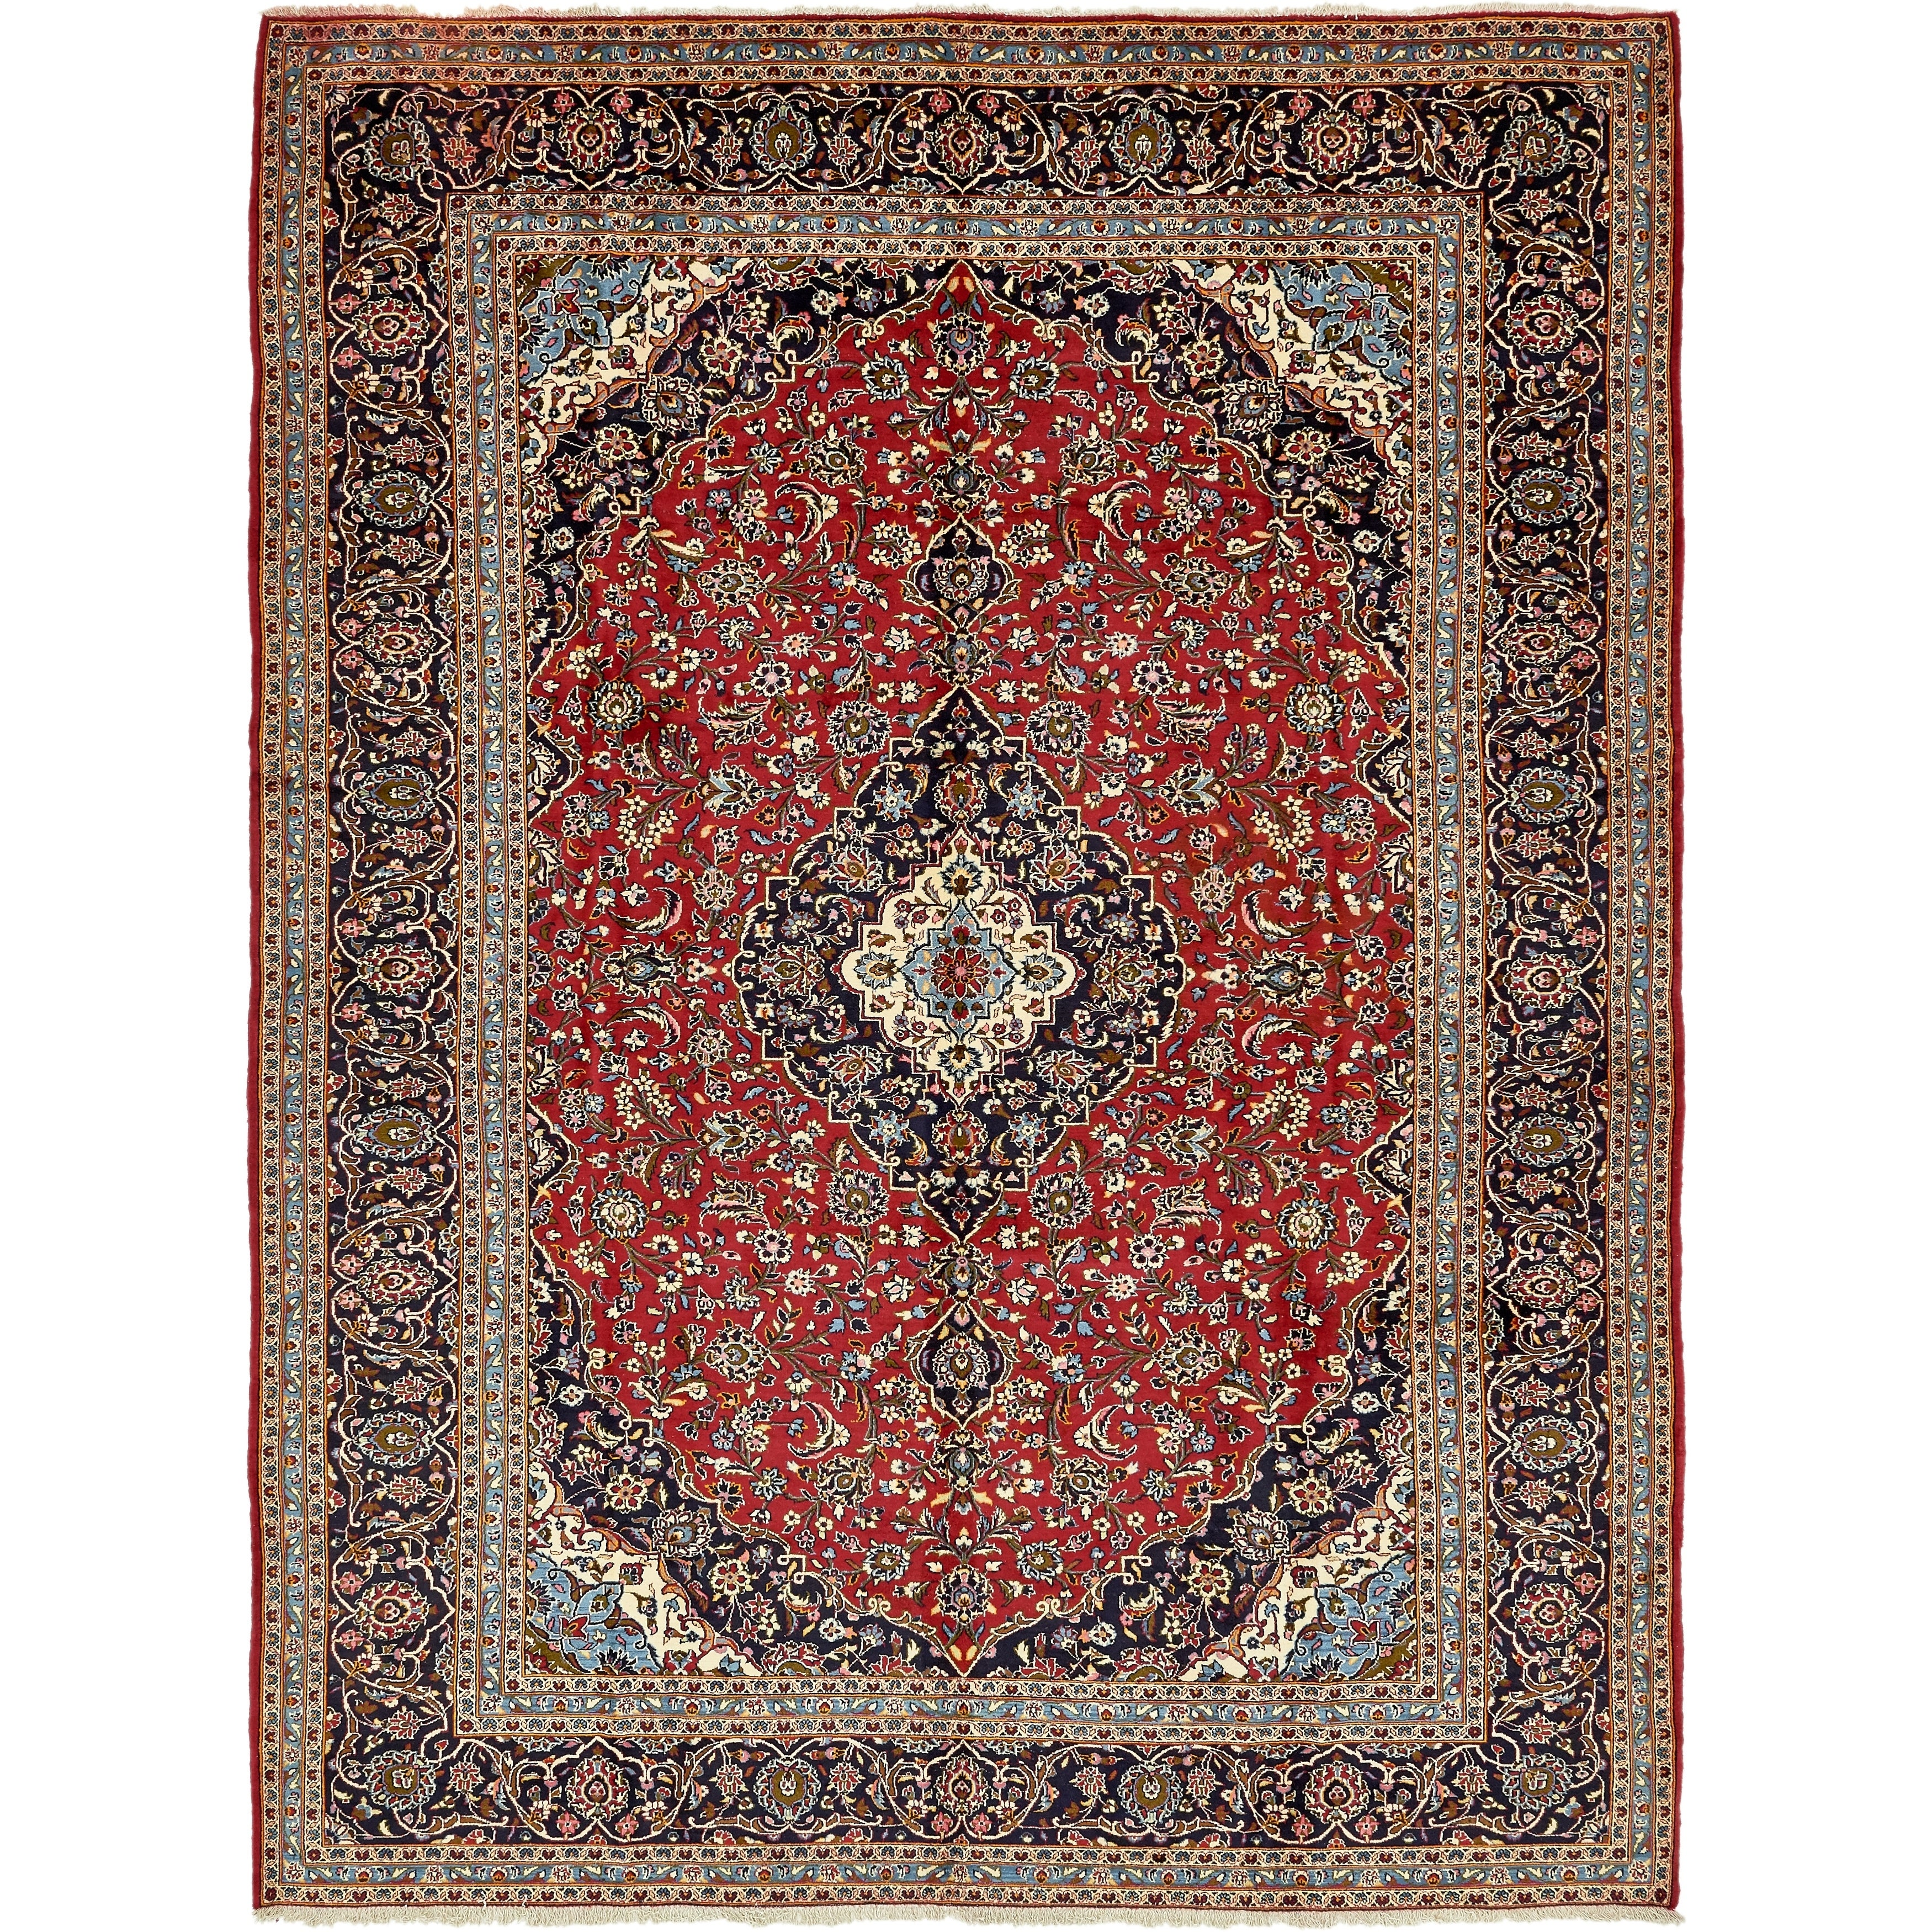 Hand Knotted Kashan Semi Antique Wool Area Rug - 9' 8 x 13' 4 (Red - 9' 8 x 13' 4)